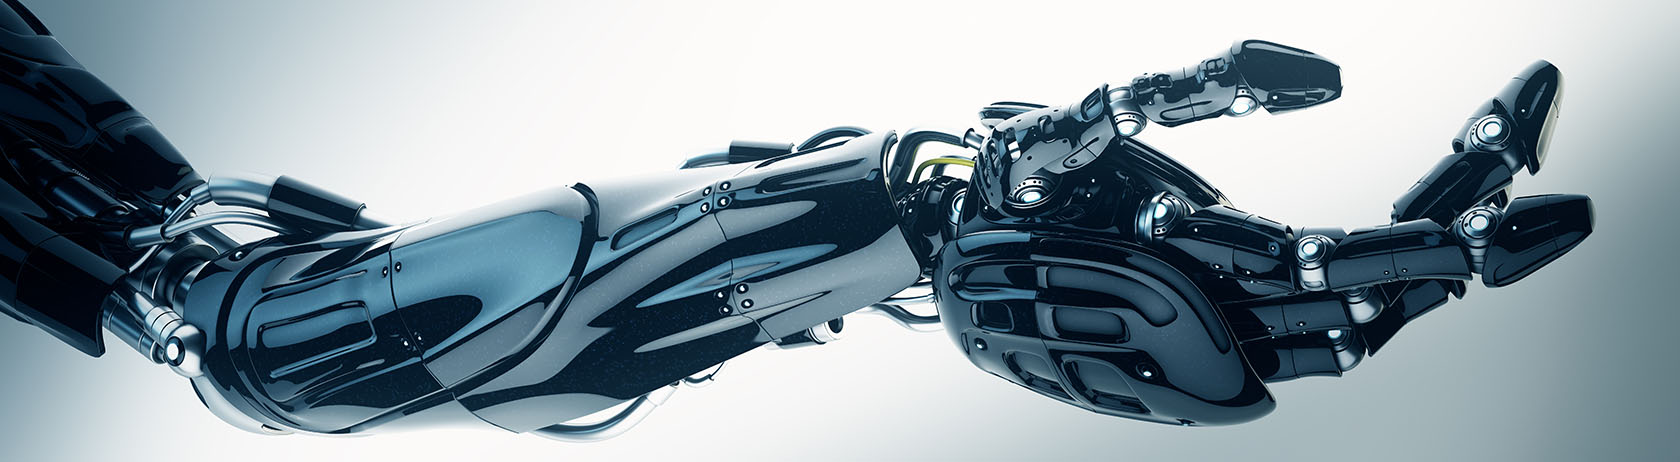 Future innovations using robotic arms